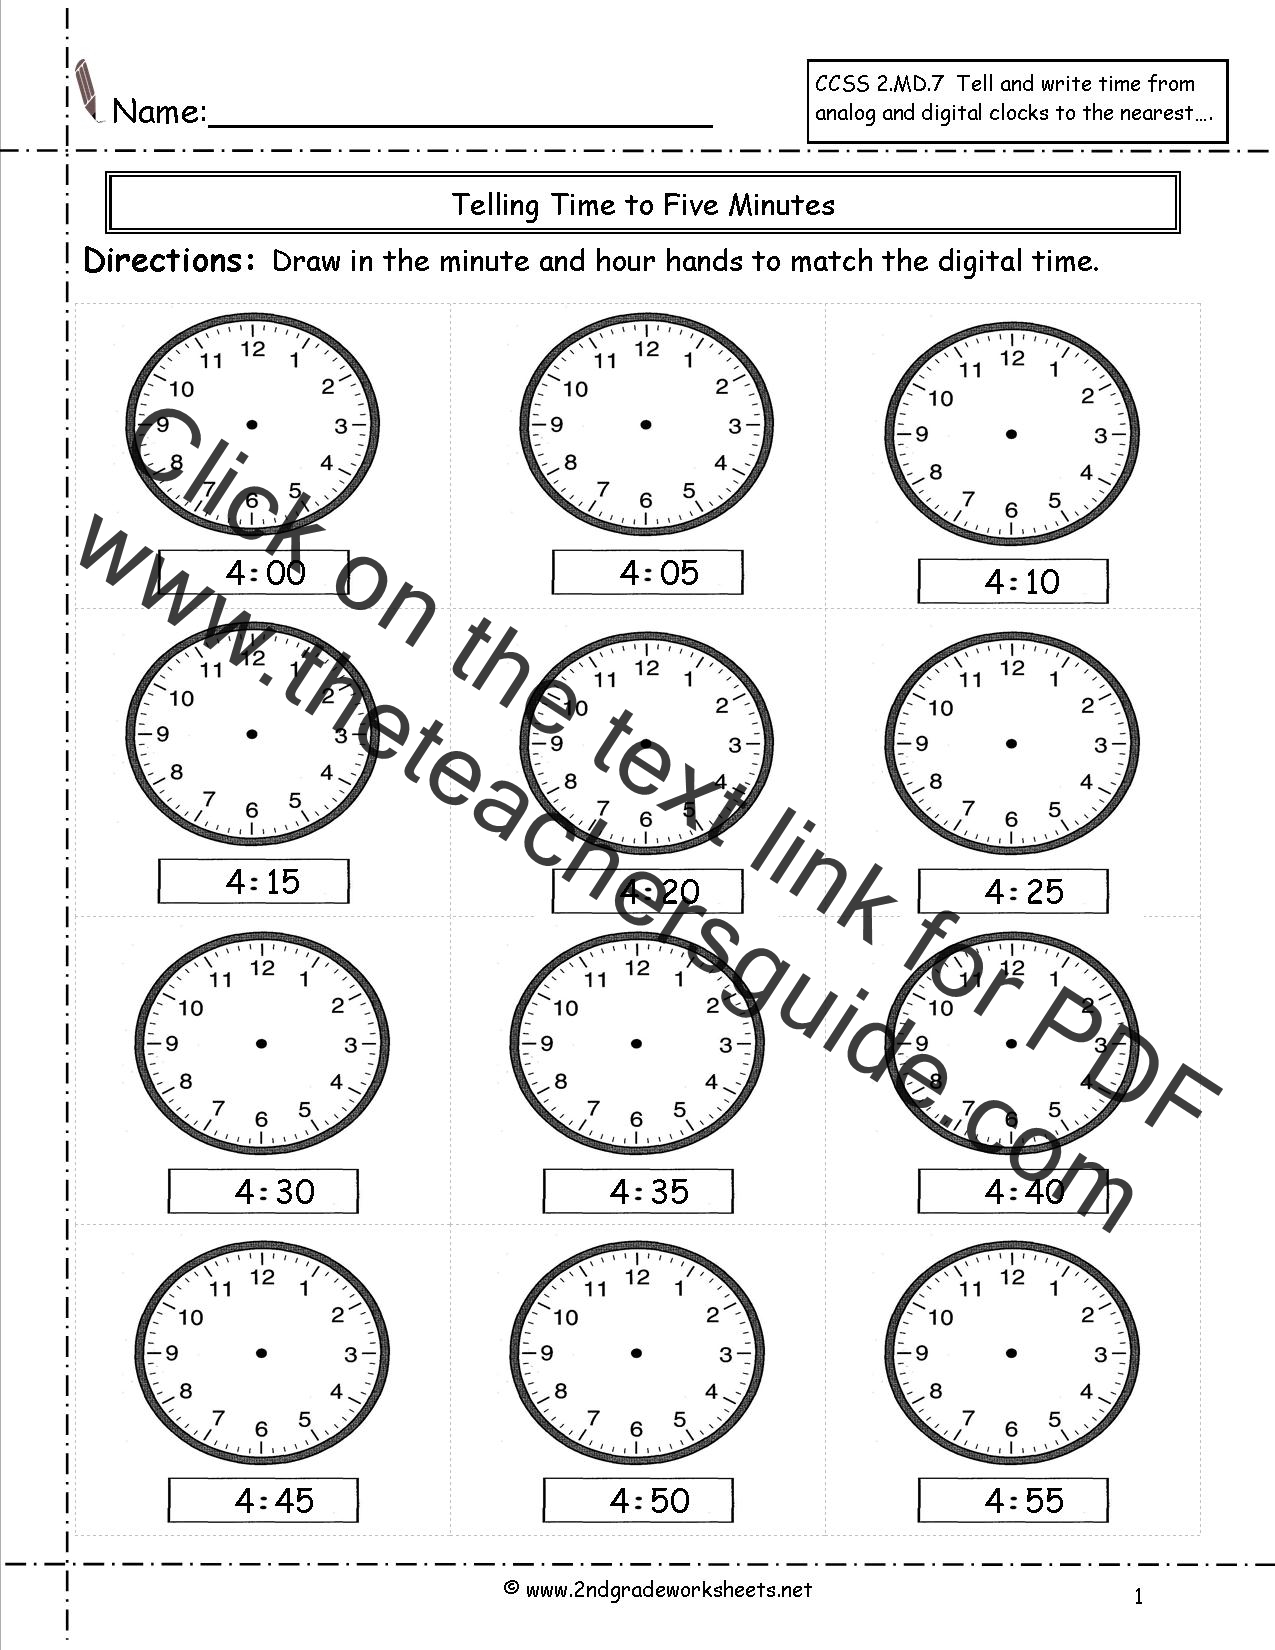 Worksheets Telling Time Worksheets 2nd Grade telling and writing time worksheets worksheets